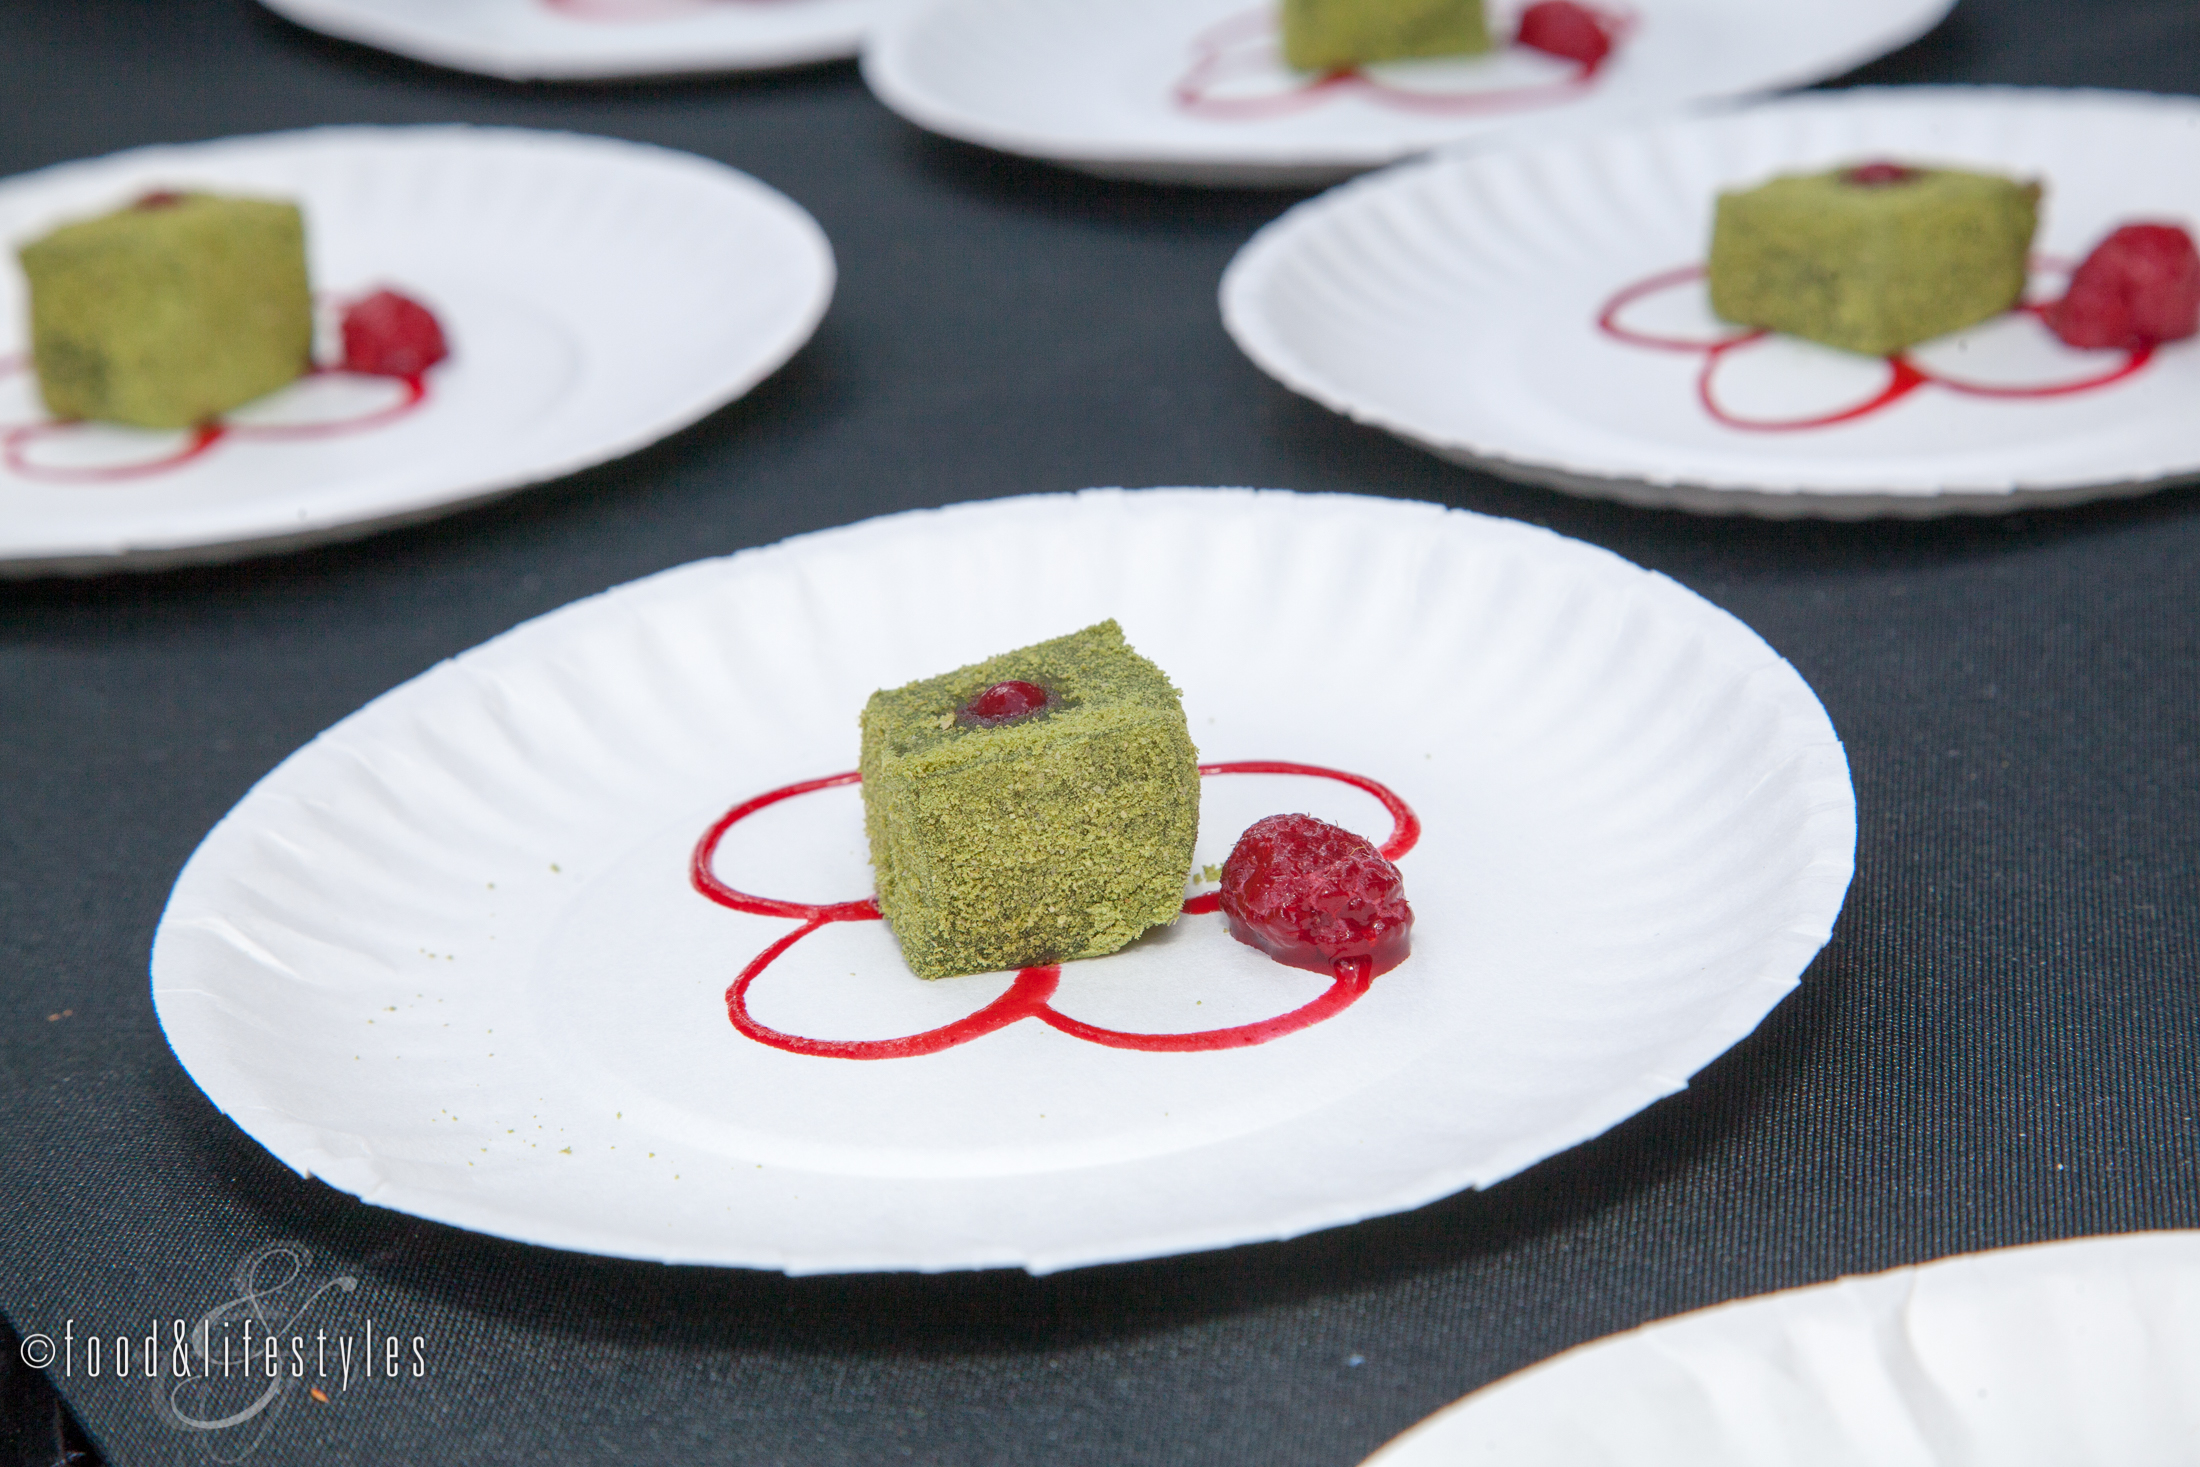 Hana's Matcha Mochi Warabi Mo Hi (pounded rice squares in matcha powder with raspberry)